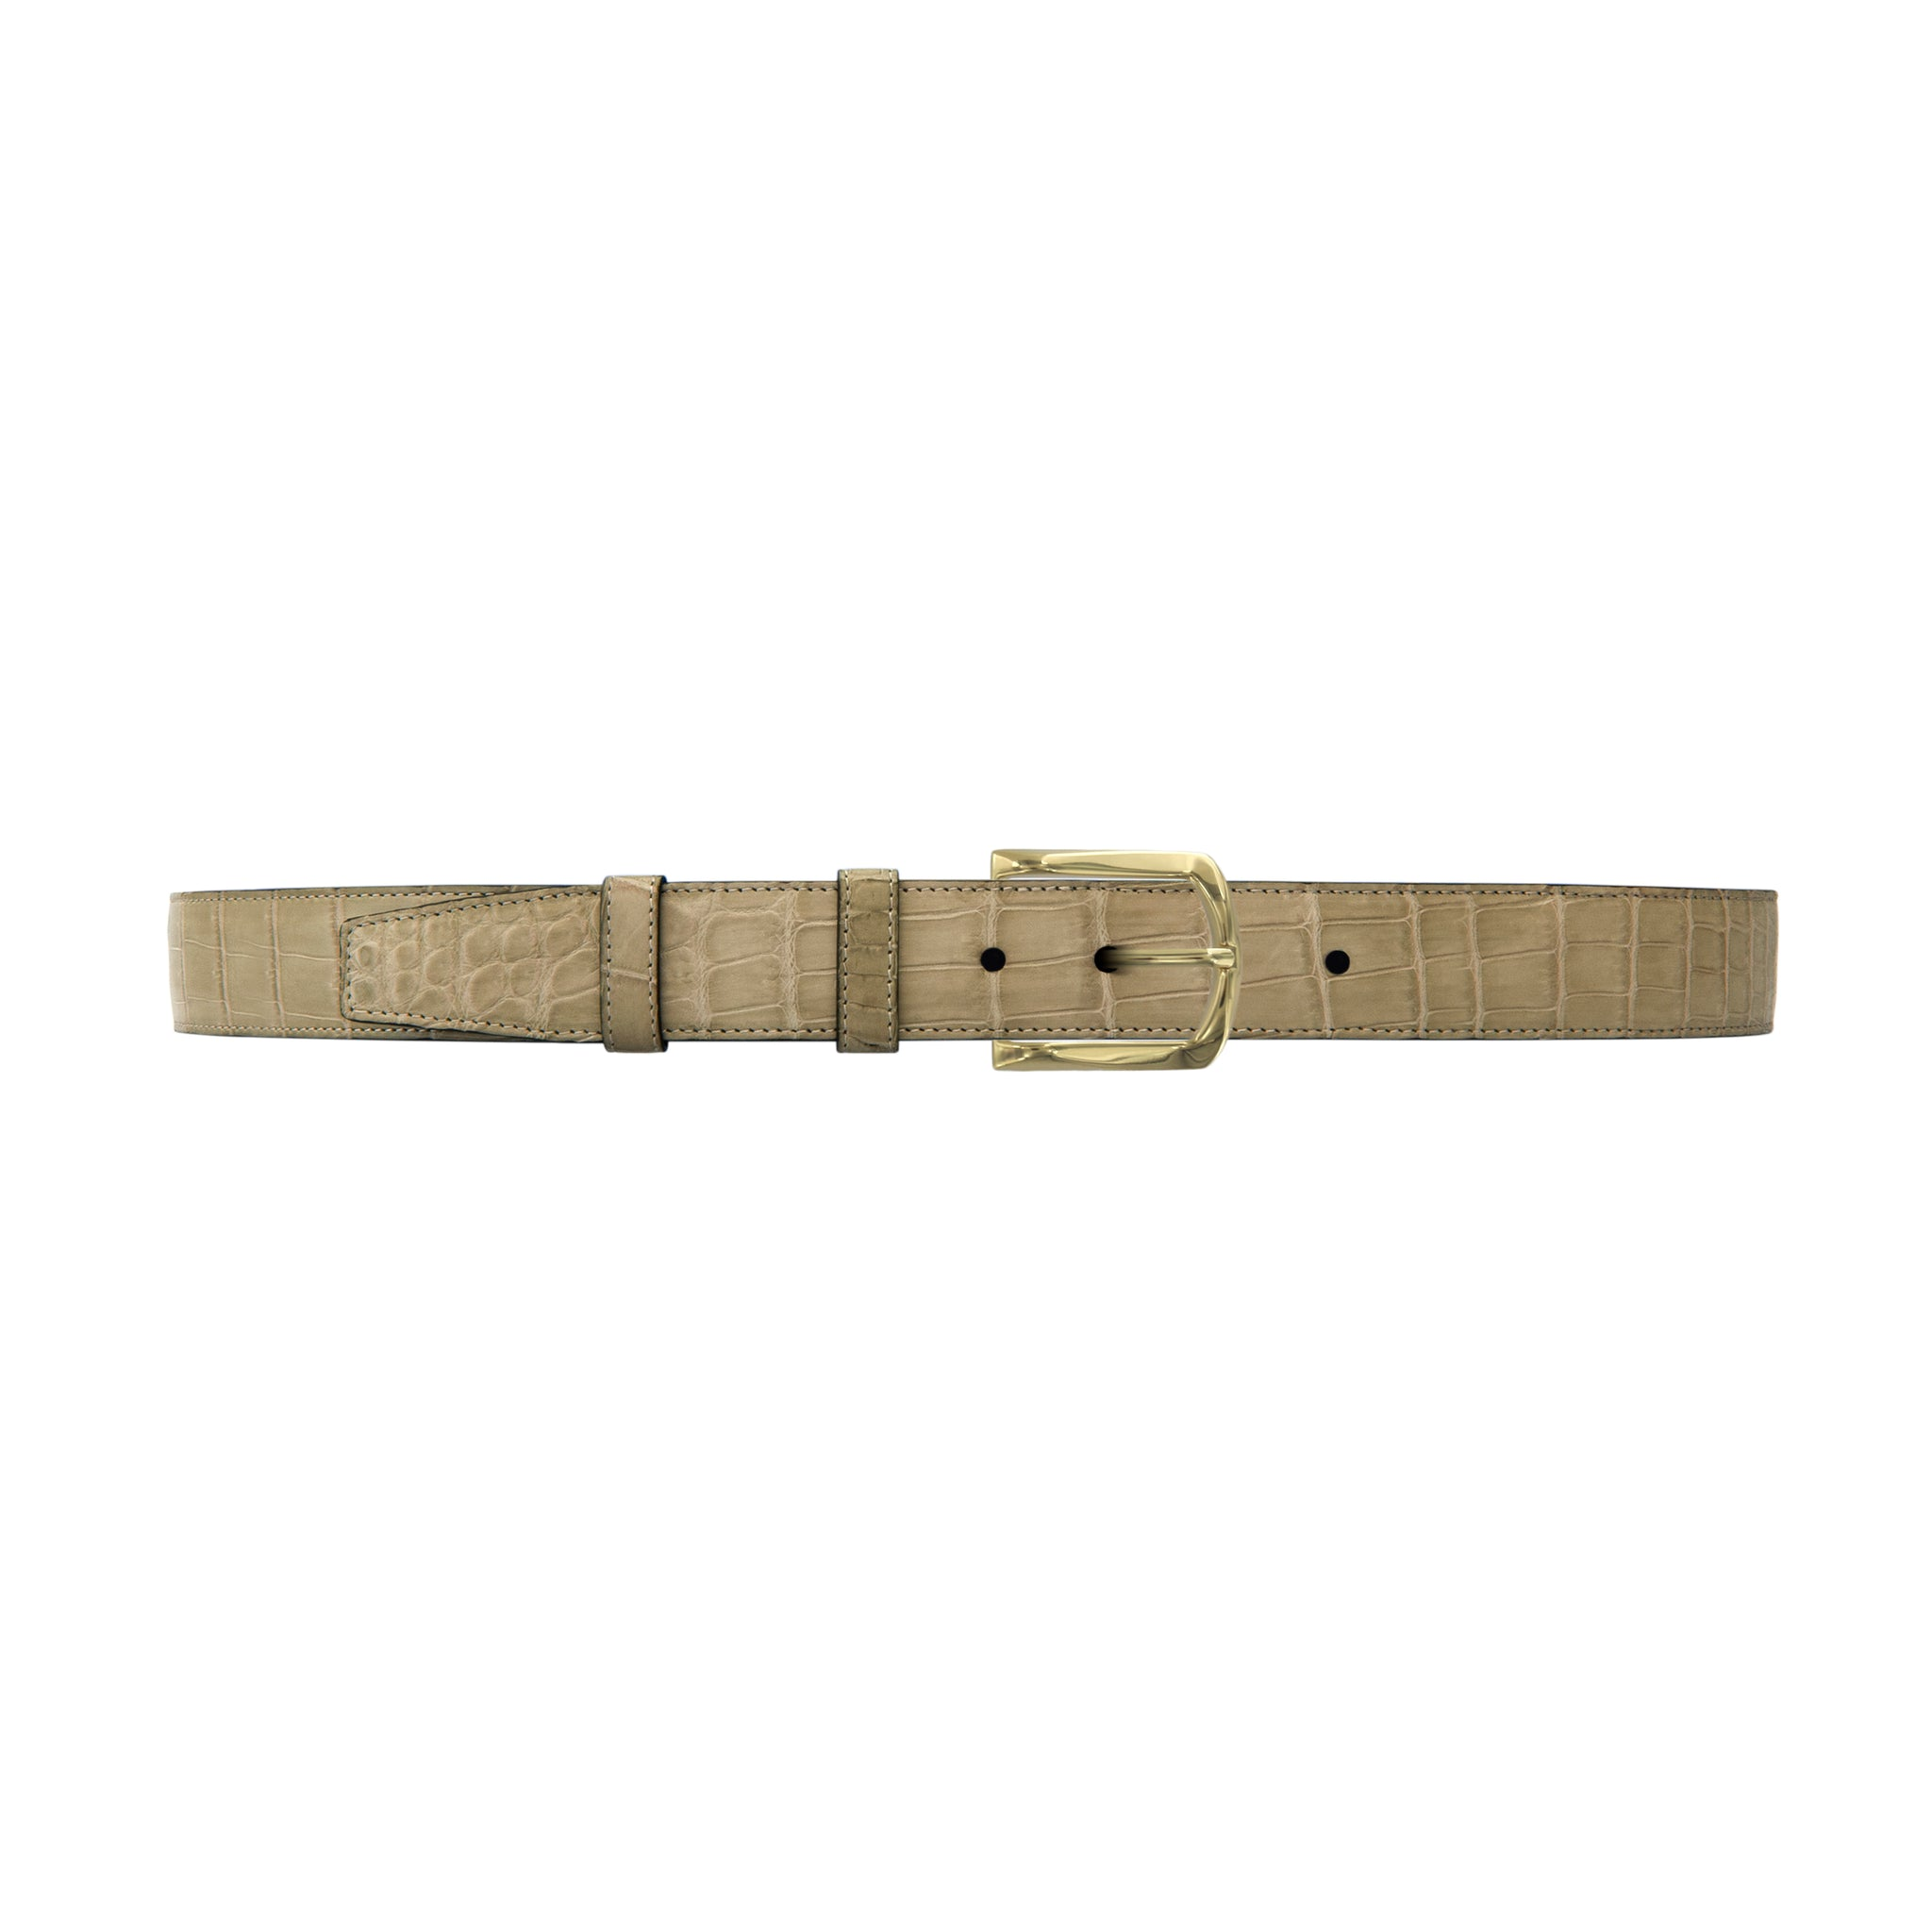 "1 1/4"" Sand Classic Belt with Sutton Dress Buckle in Brass"